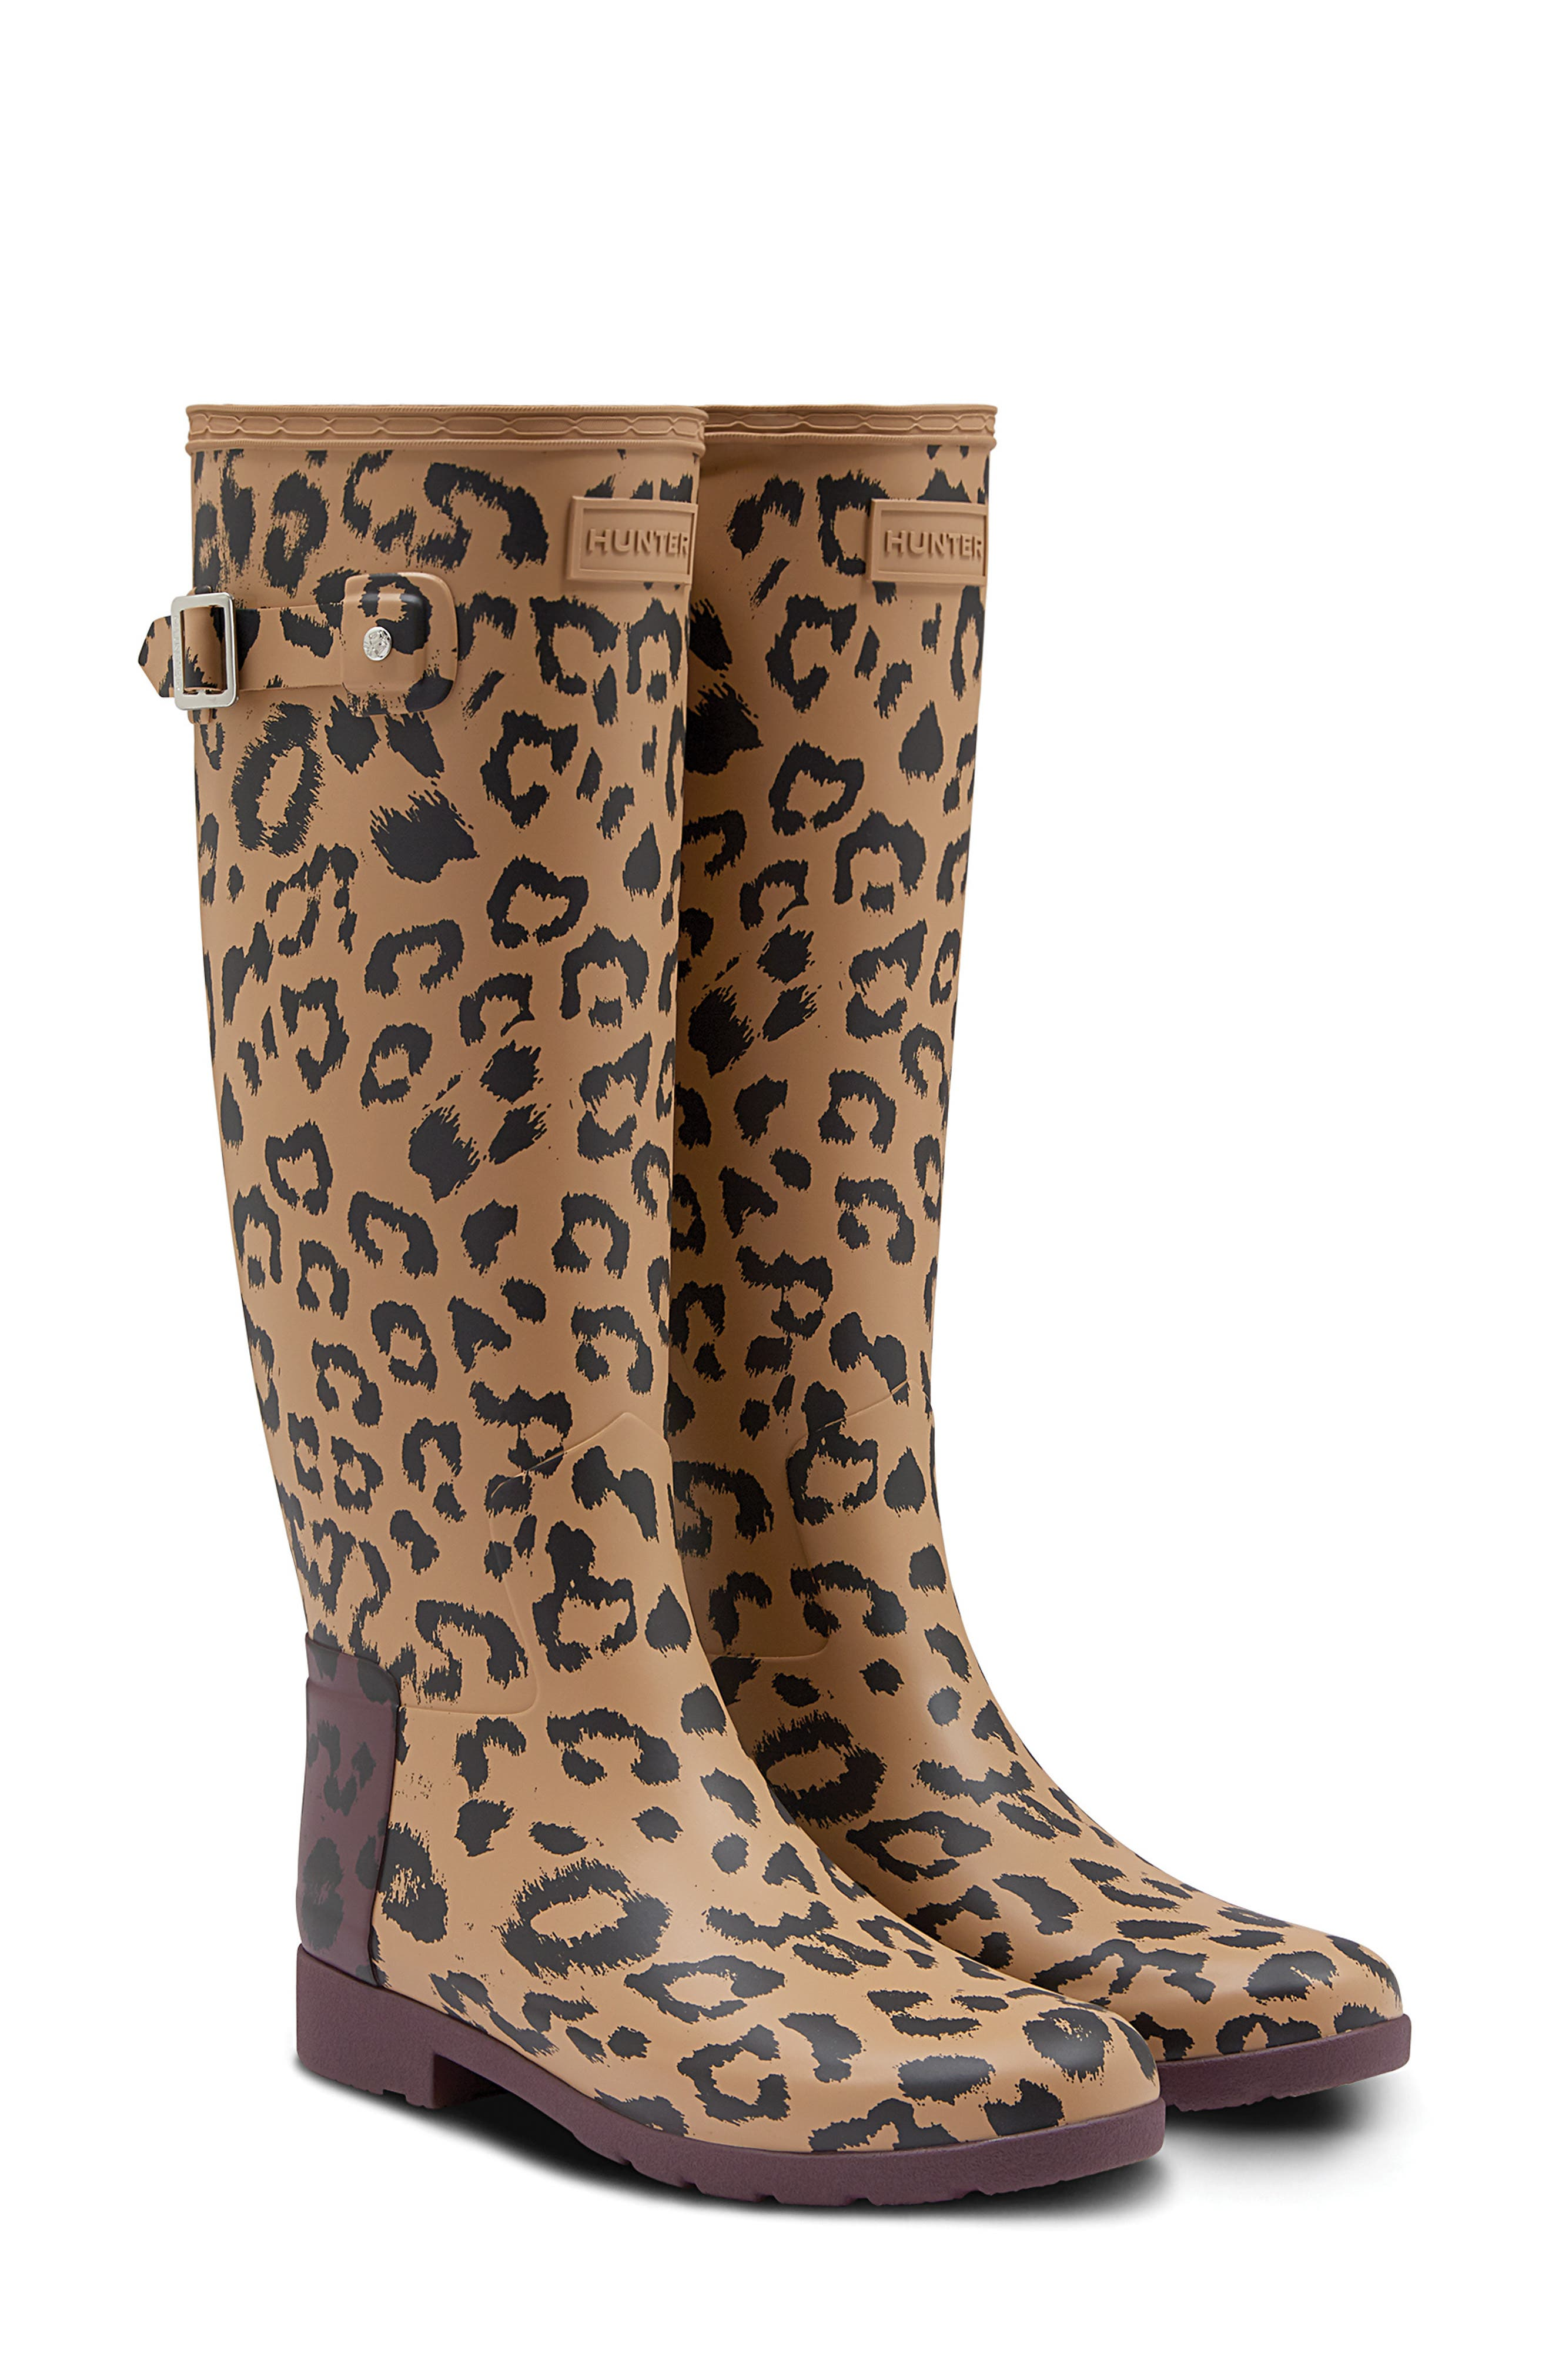 Original Leopard Print Refined Tall Waterproof Rain Boot,                         Main,                         color, TAWNY/ OXBLOOD RUBBER